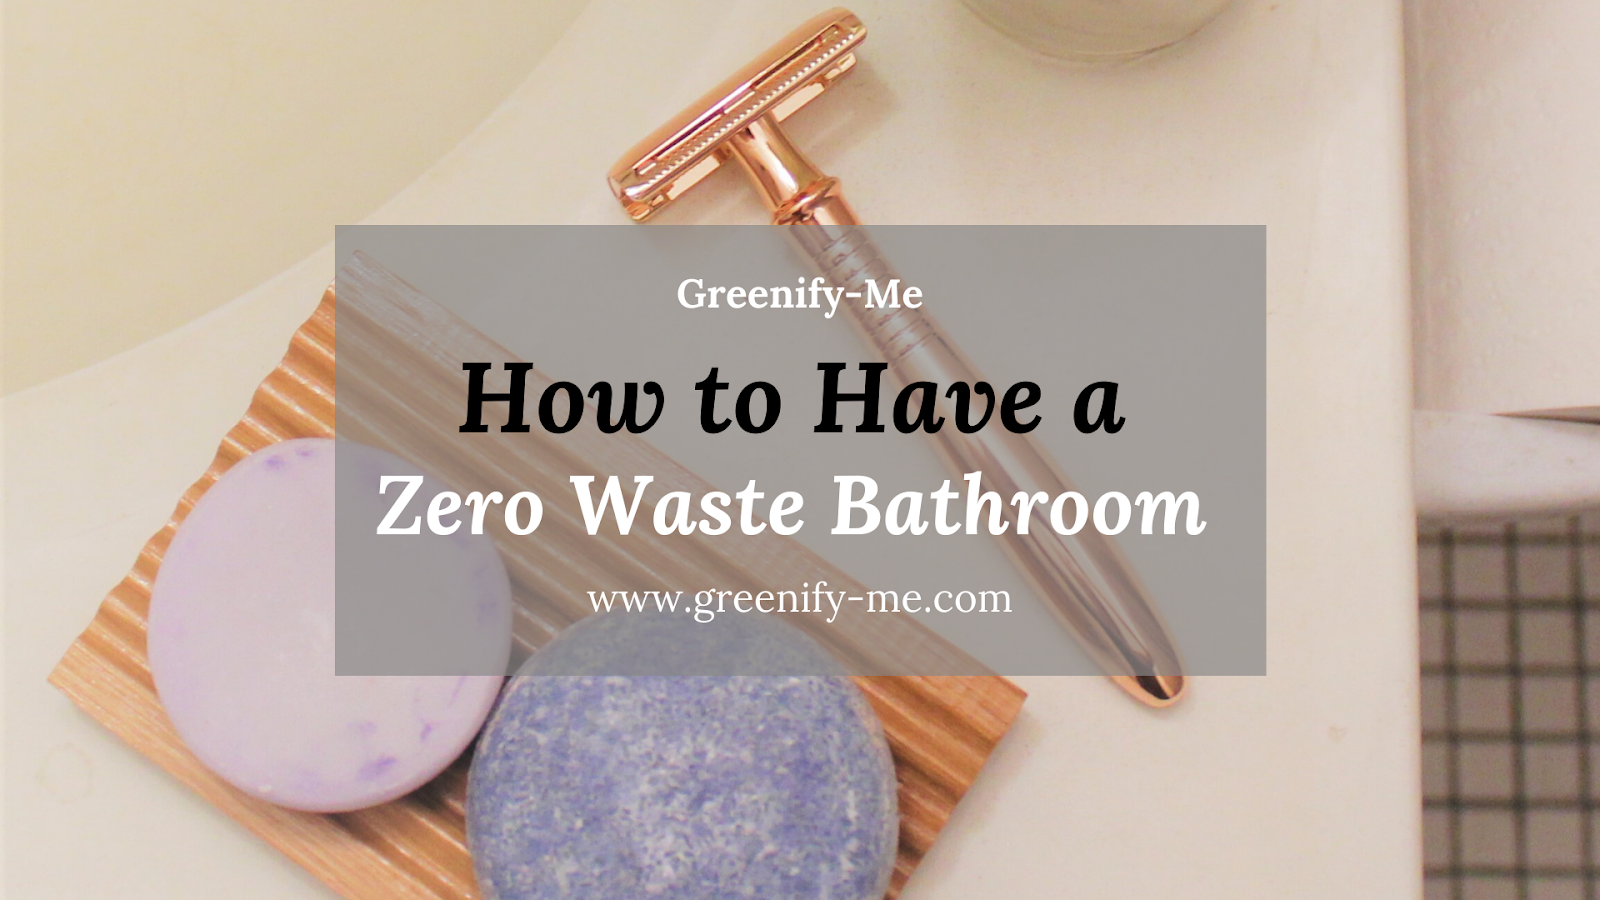 How to Have a Zero Waste Bathroom